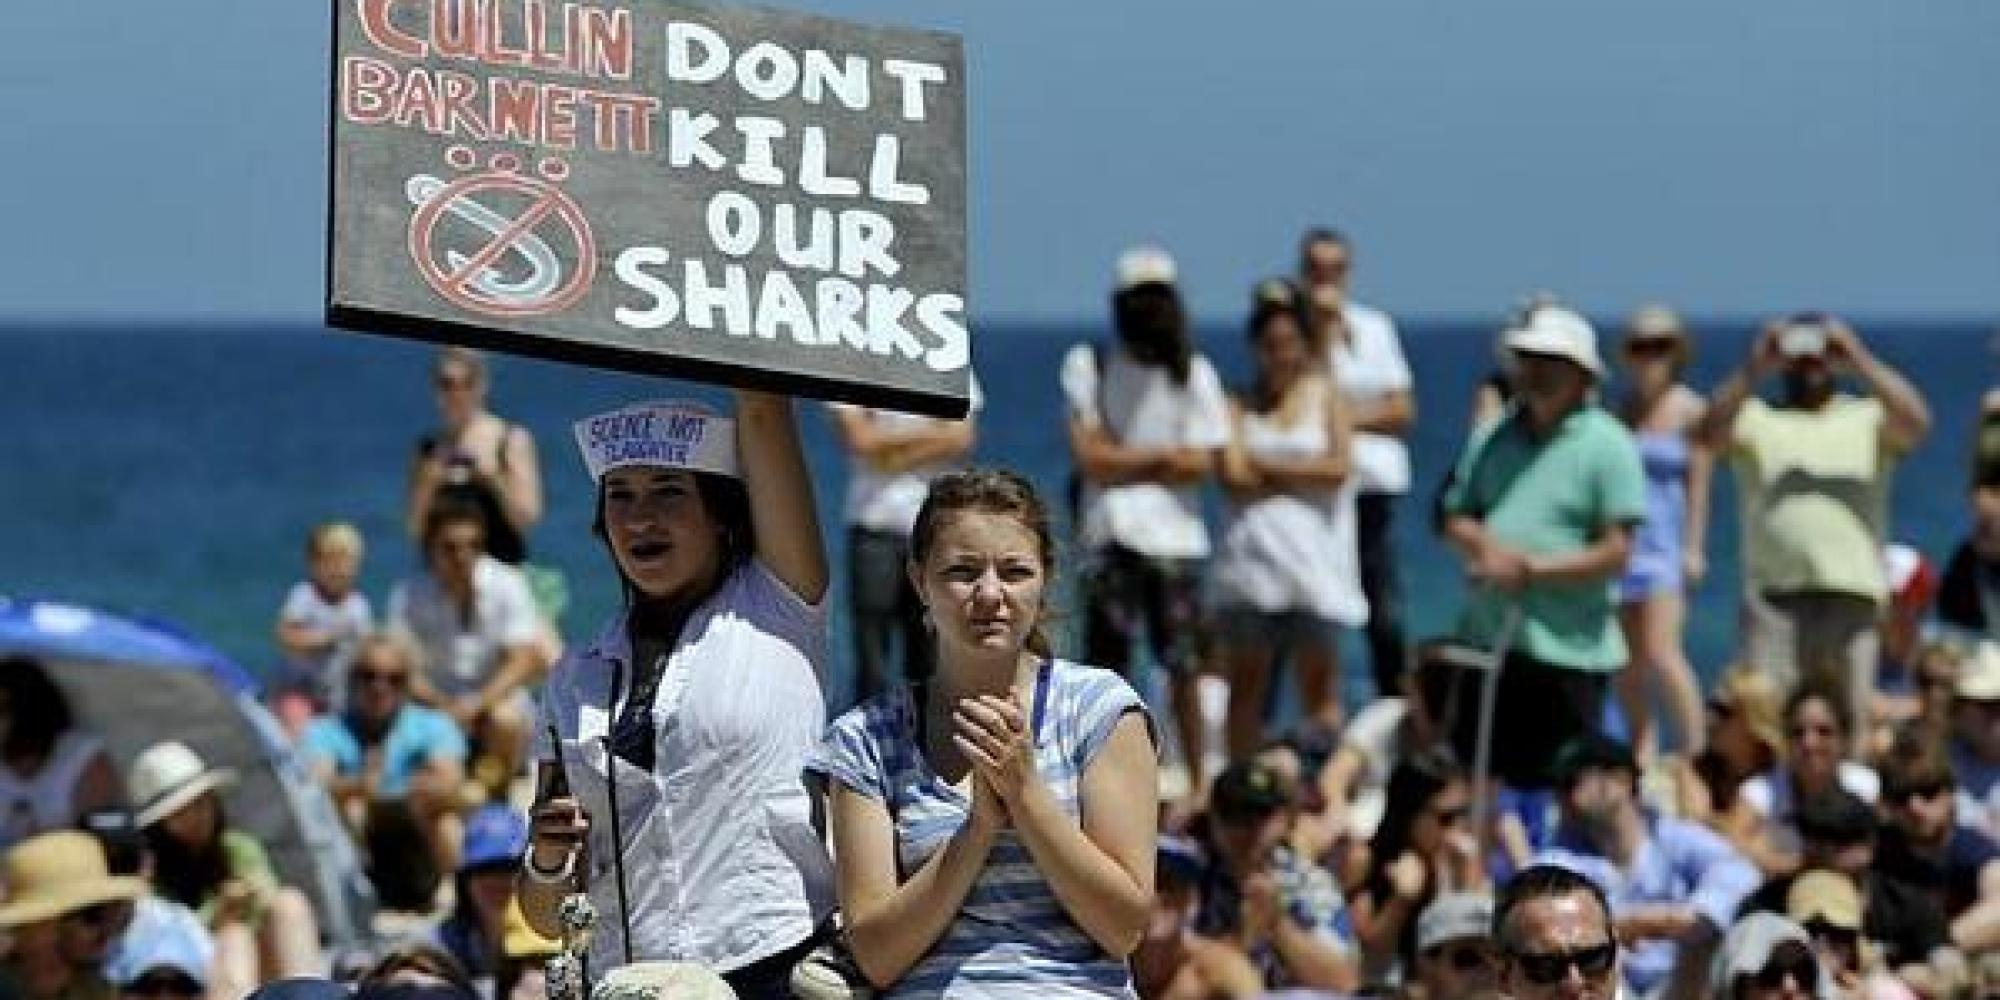 Protests against Shark Cull on Australia's beaches. Photo: Facebook